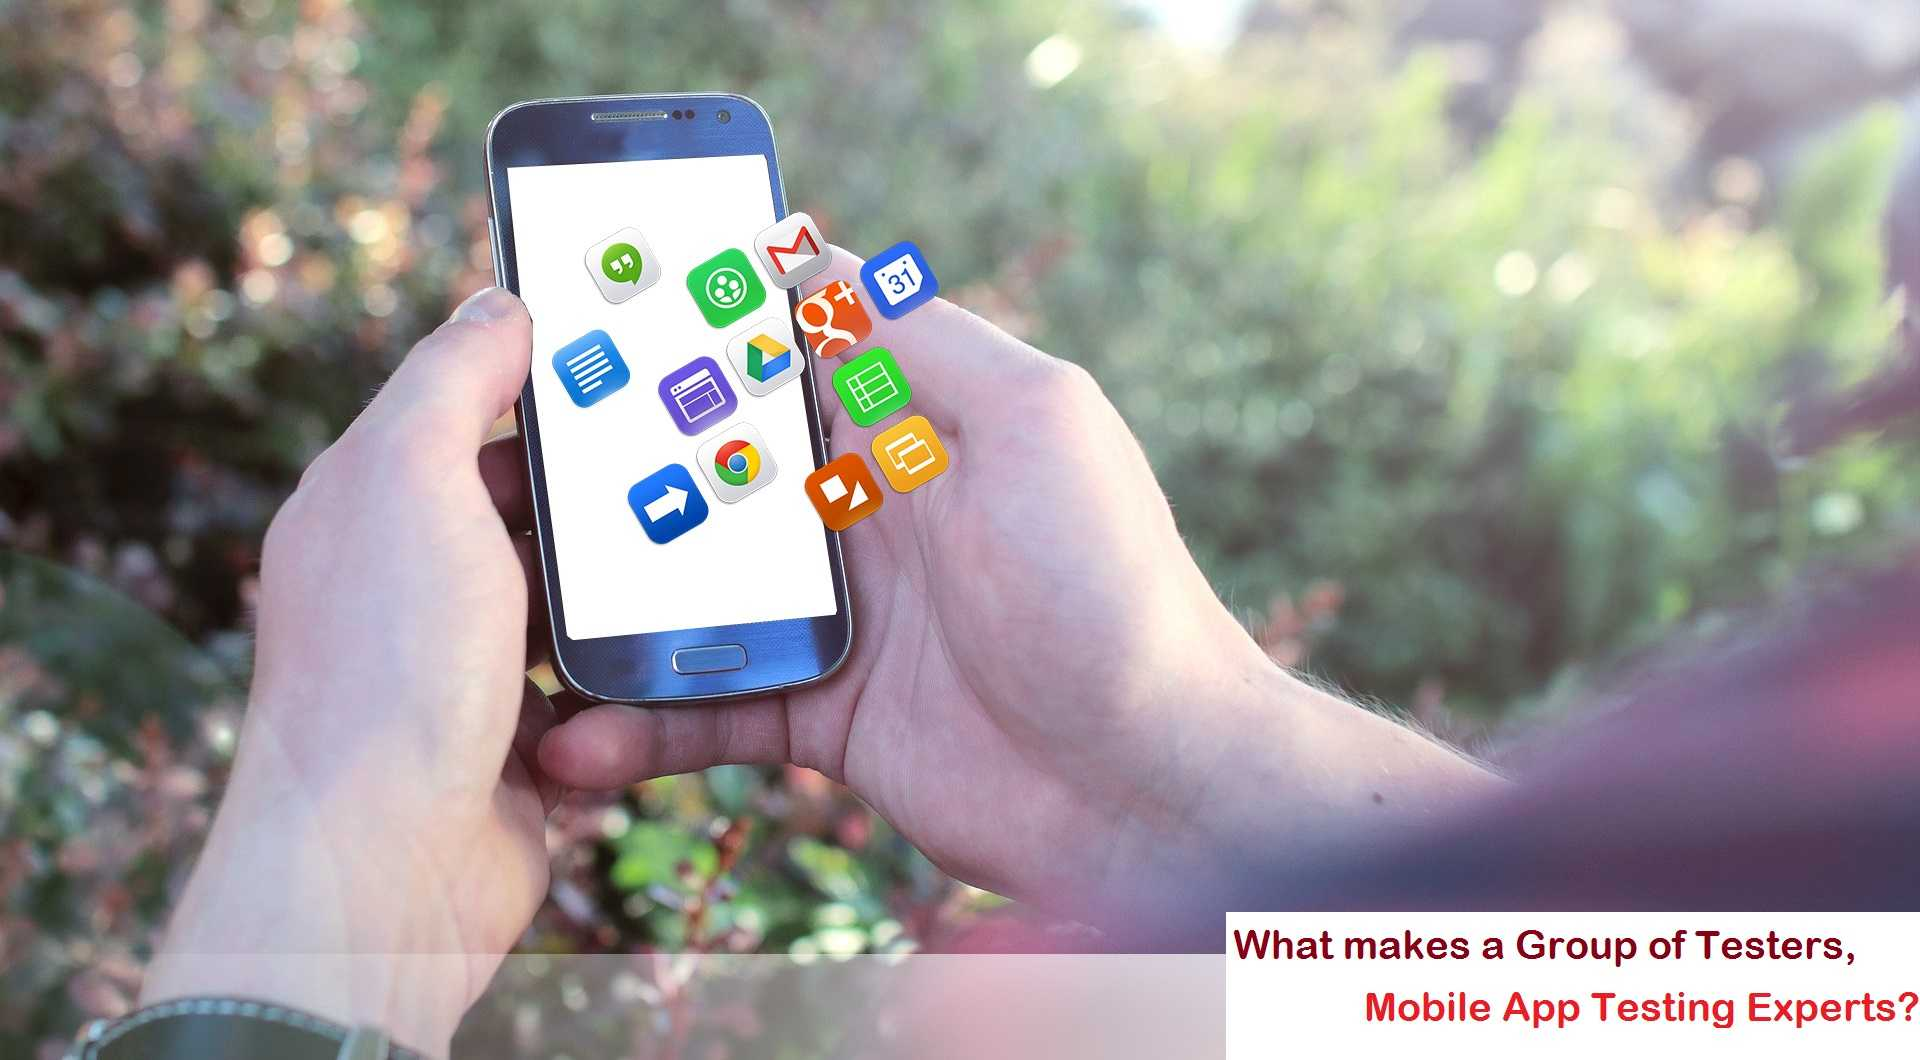 What makes a Group of Testers, Mobile App Testing Experts?